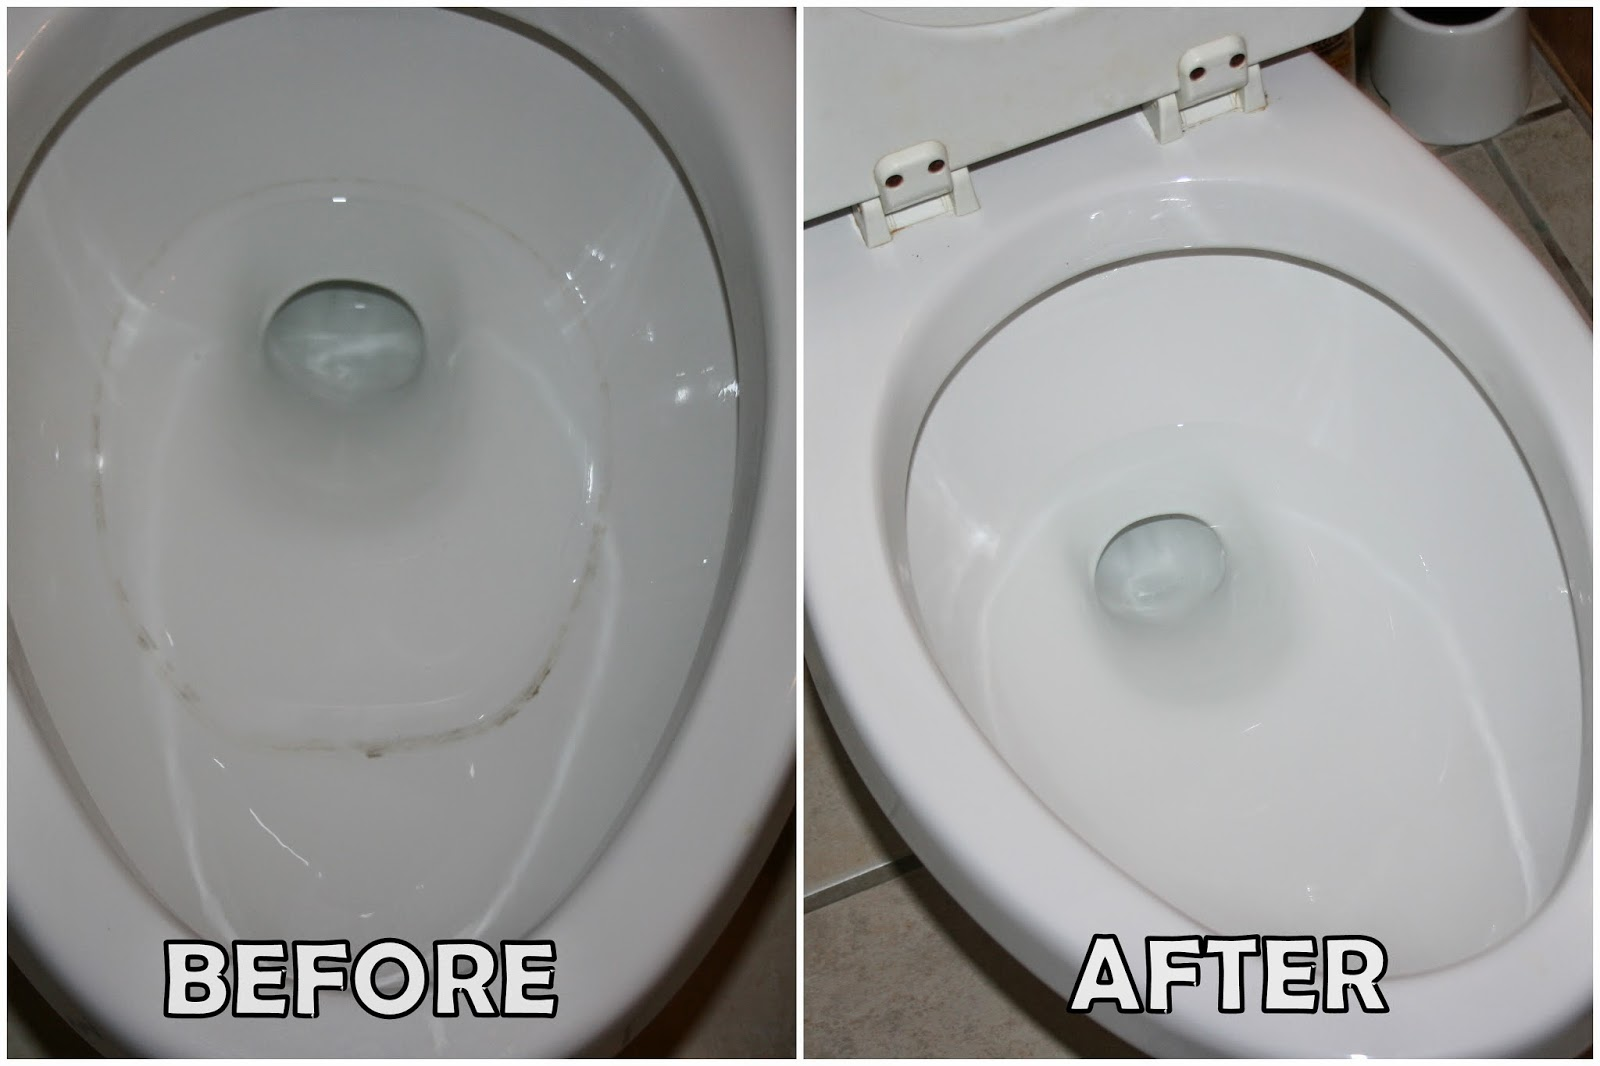 How to clean the toilet bowl from the inside of the rust